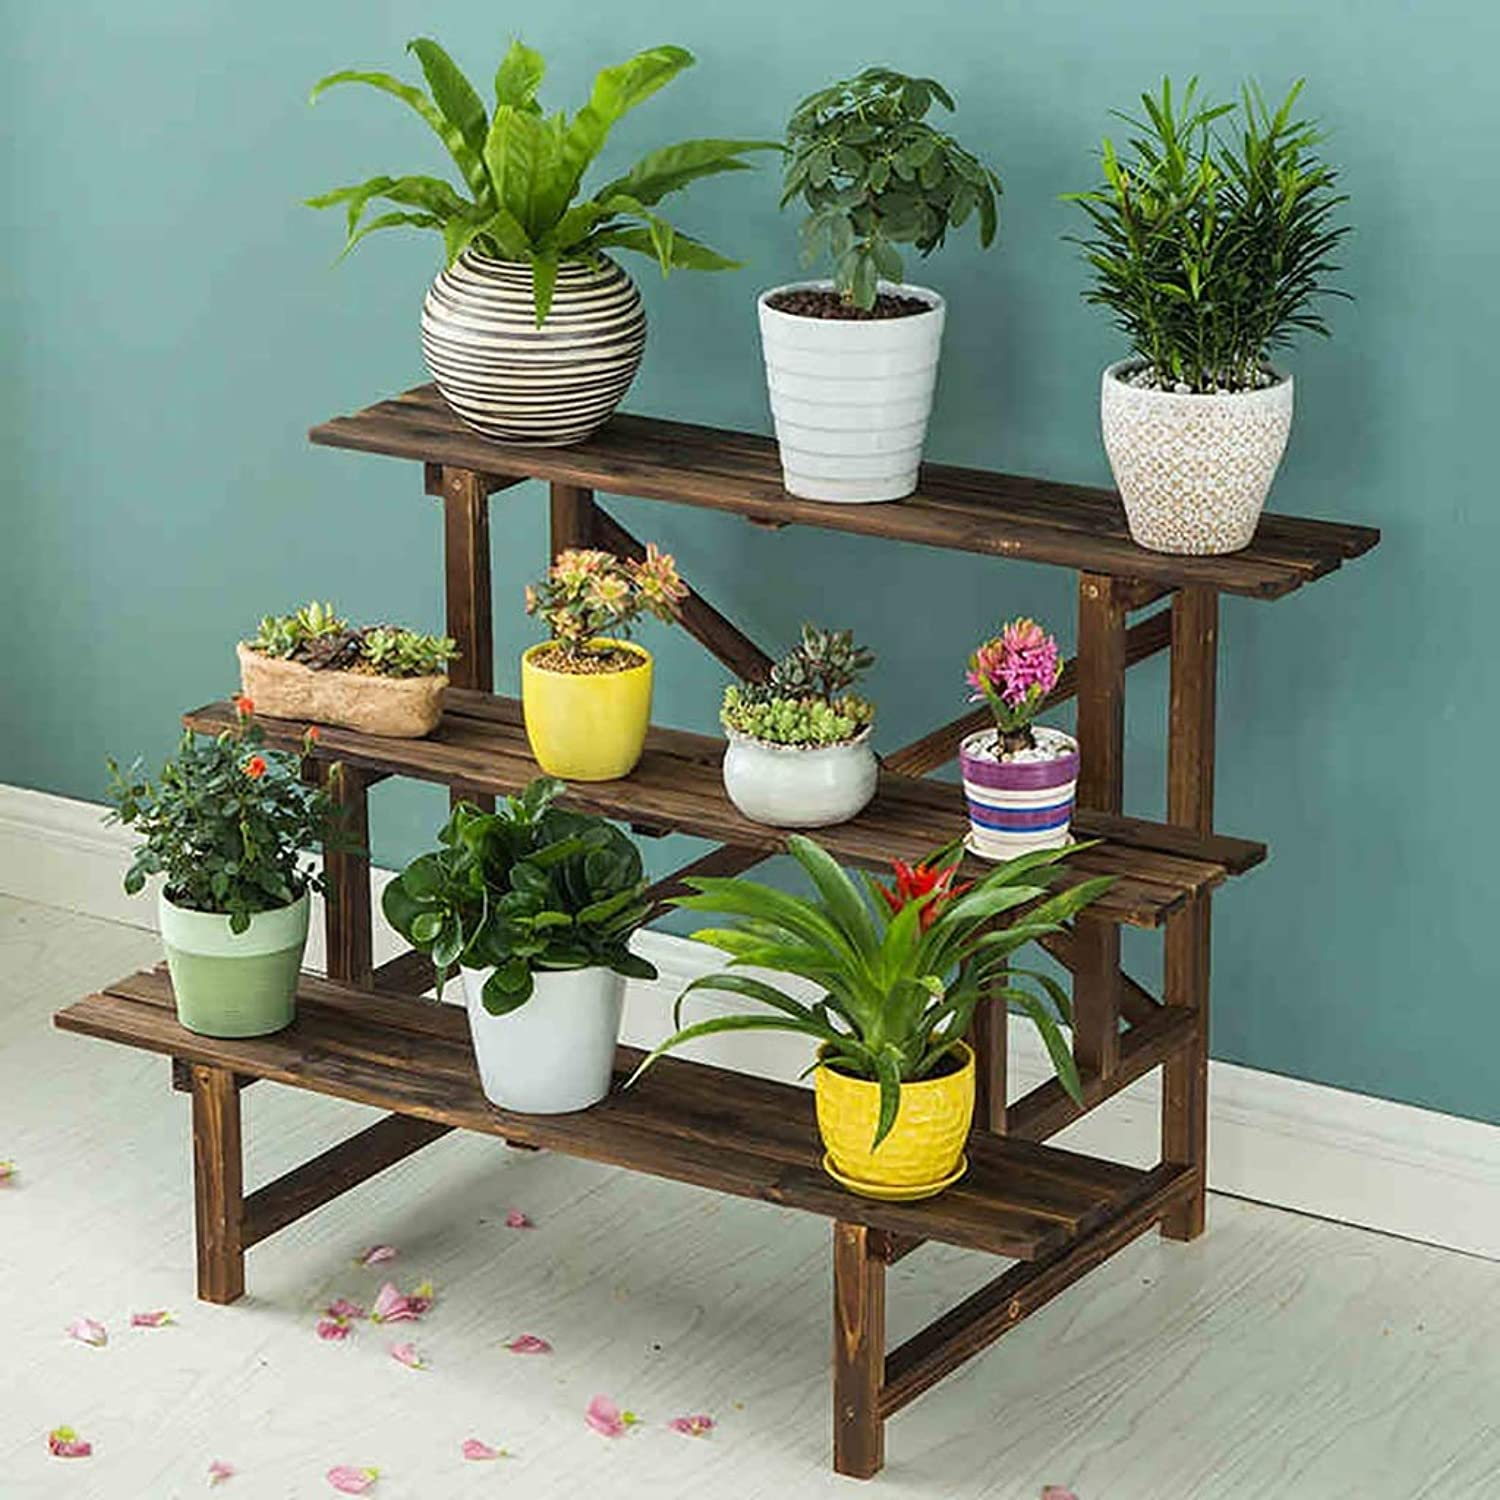 Standing Flower Stand Wooden Flower Rack Indoor Plant Stand Wooden Plant Flower Display Stand Wood Pot Shelf Storage Rack Outdoor Decorative Frame (Size   B)